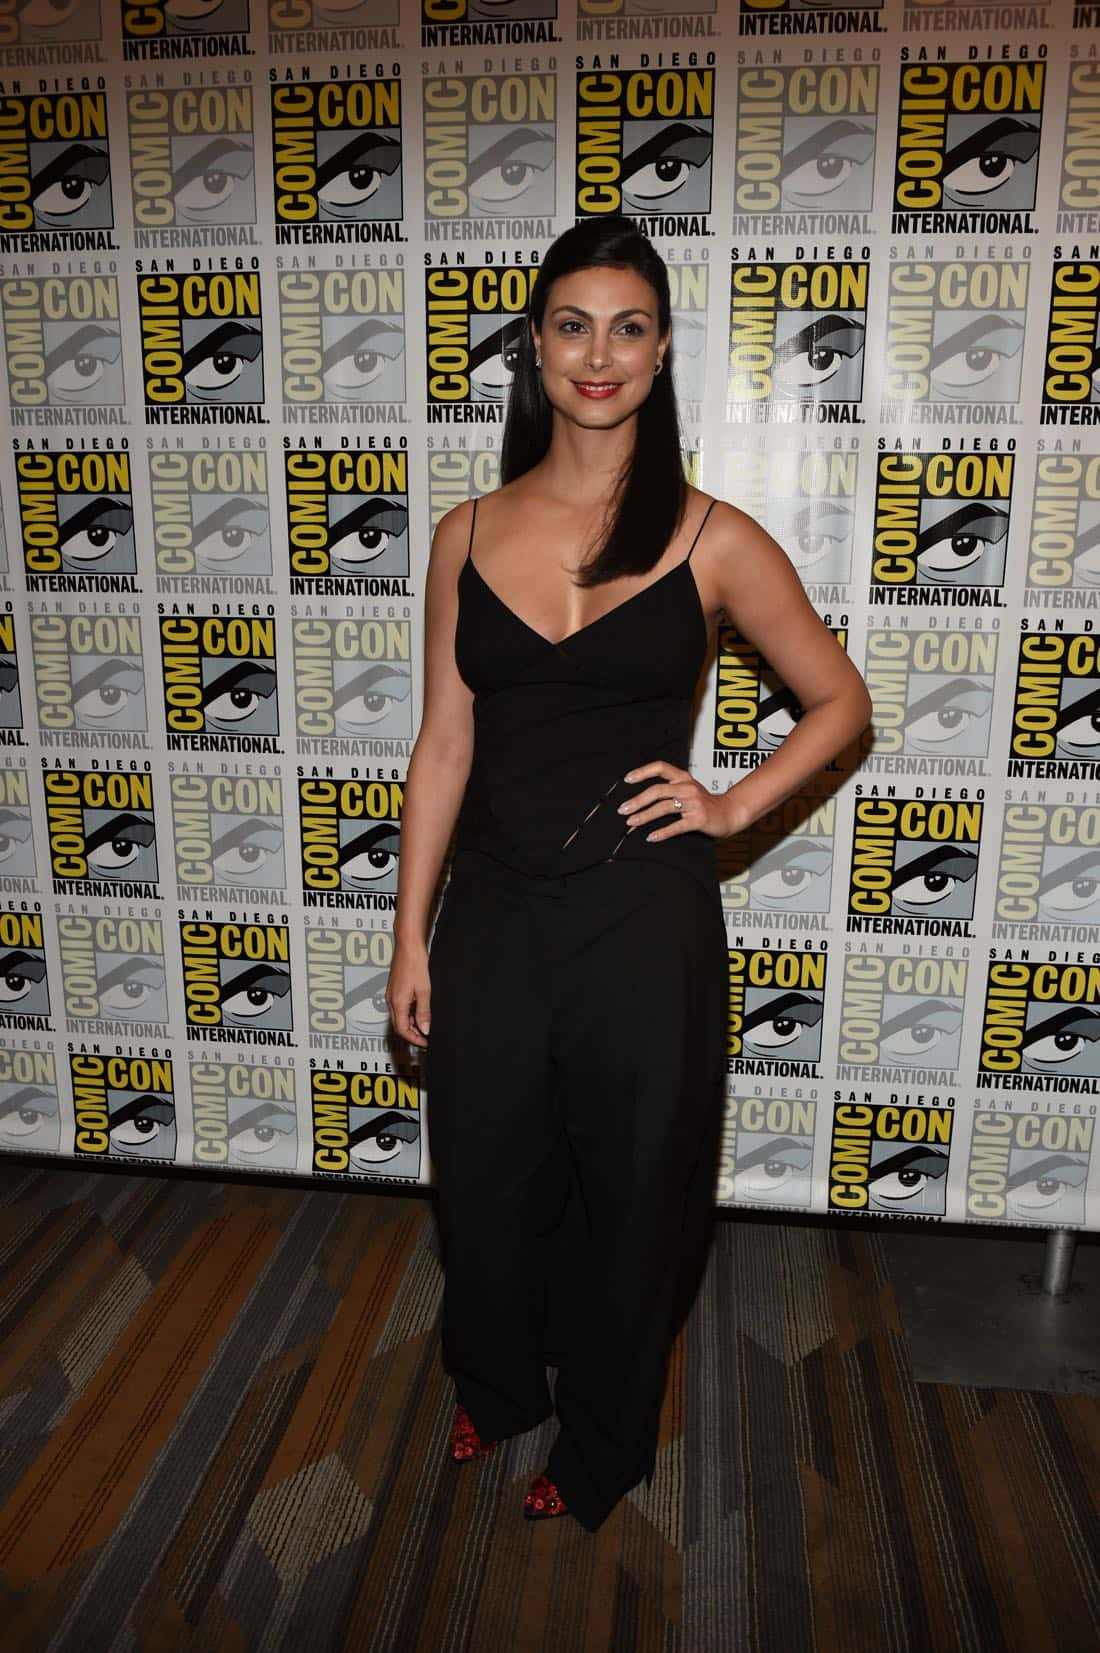 FOX FANFARE AT SAN DIEGO COMIC-CON © 2016: GOTHAM cast member Morena Baccarin during GOTHAM press room on Saturday, July 23 at the FOX FANFARE AT SAN DIEGO COMIC-CON © 2016. CR: Scott Kirkland/FOX © 2016 FOX BROADCASTING